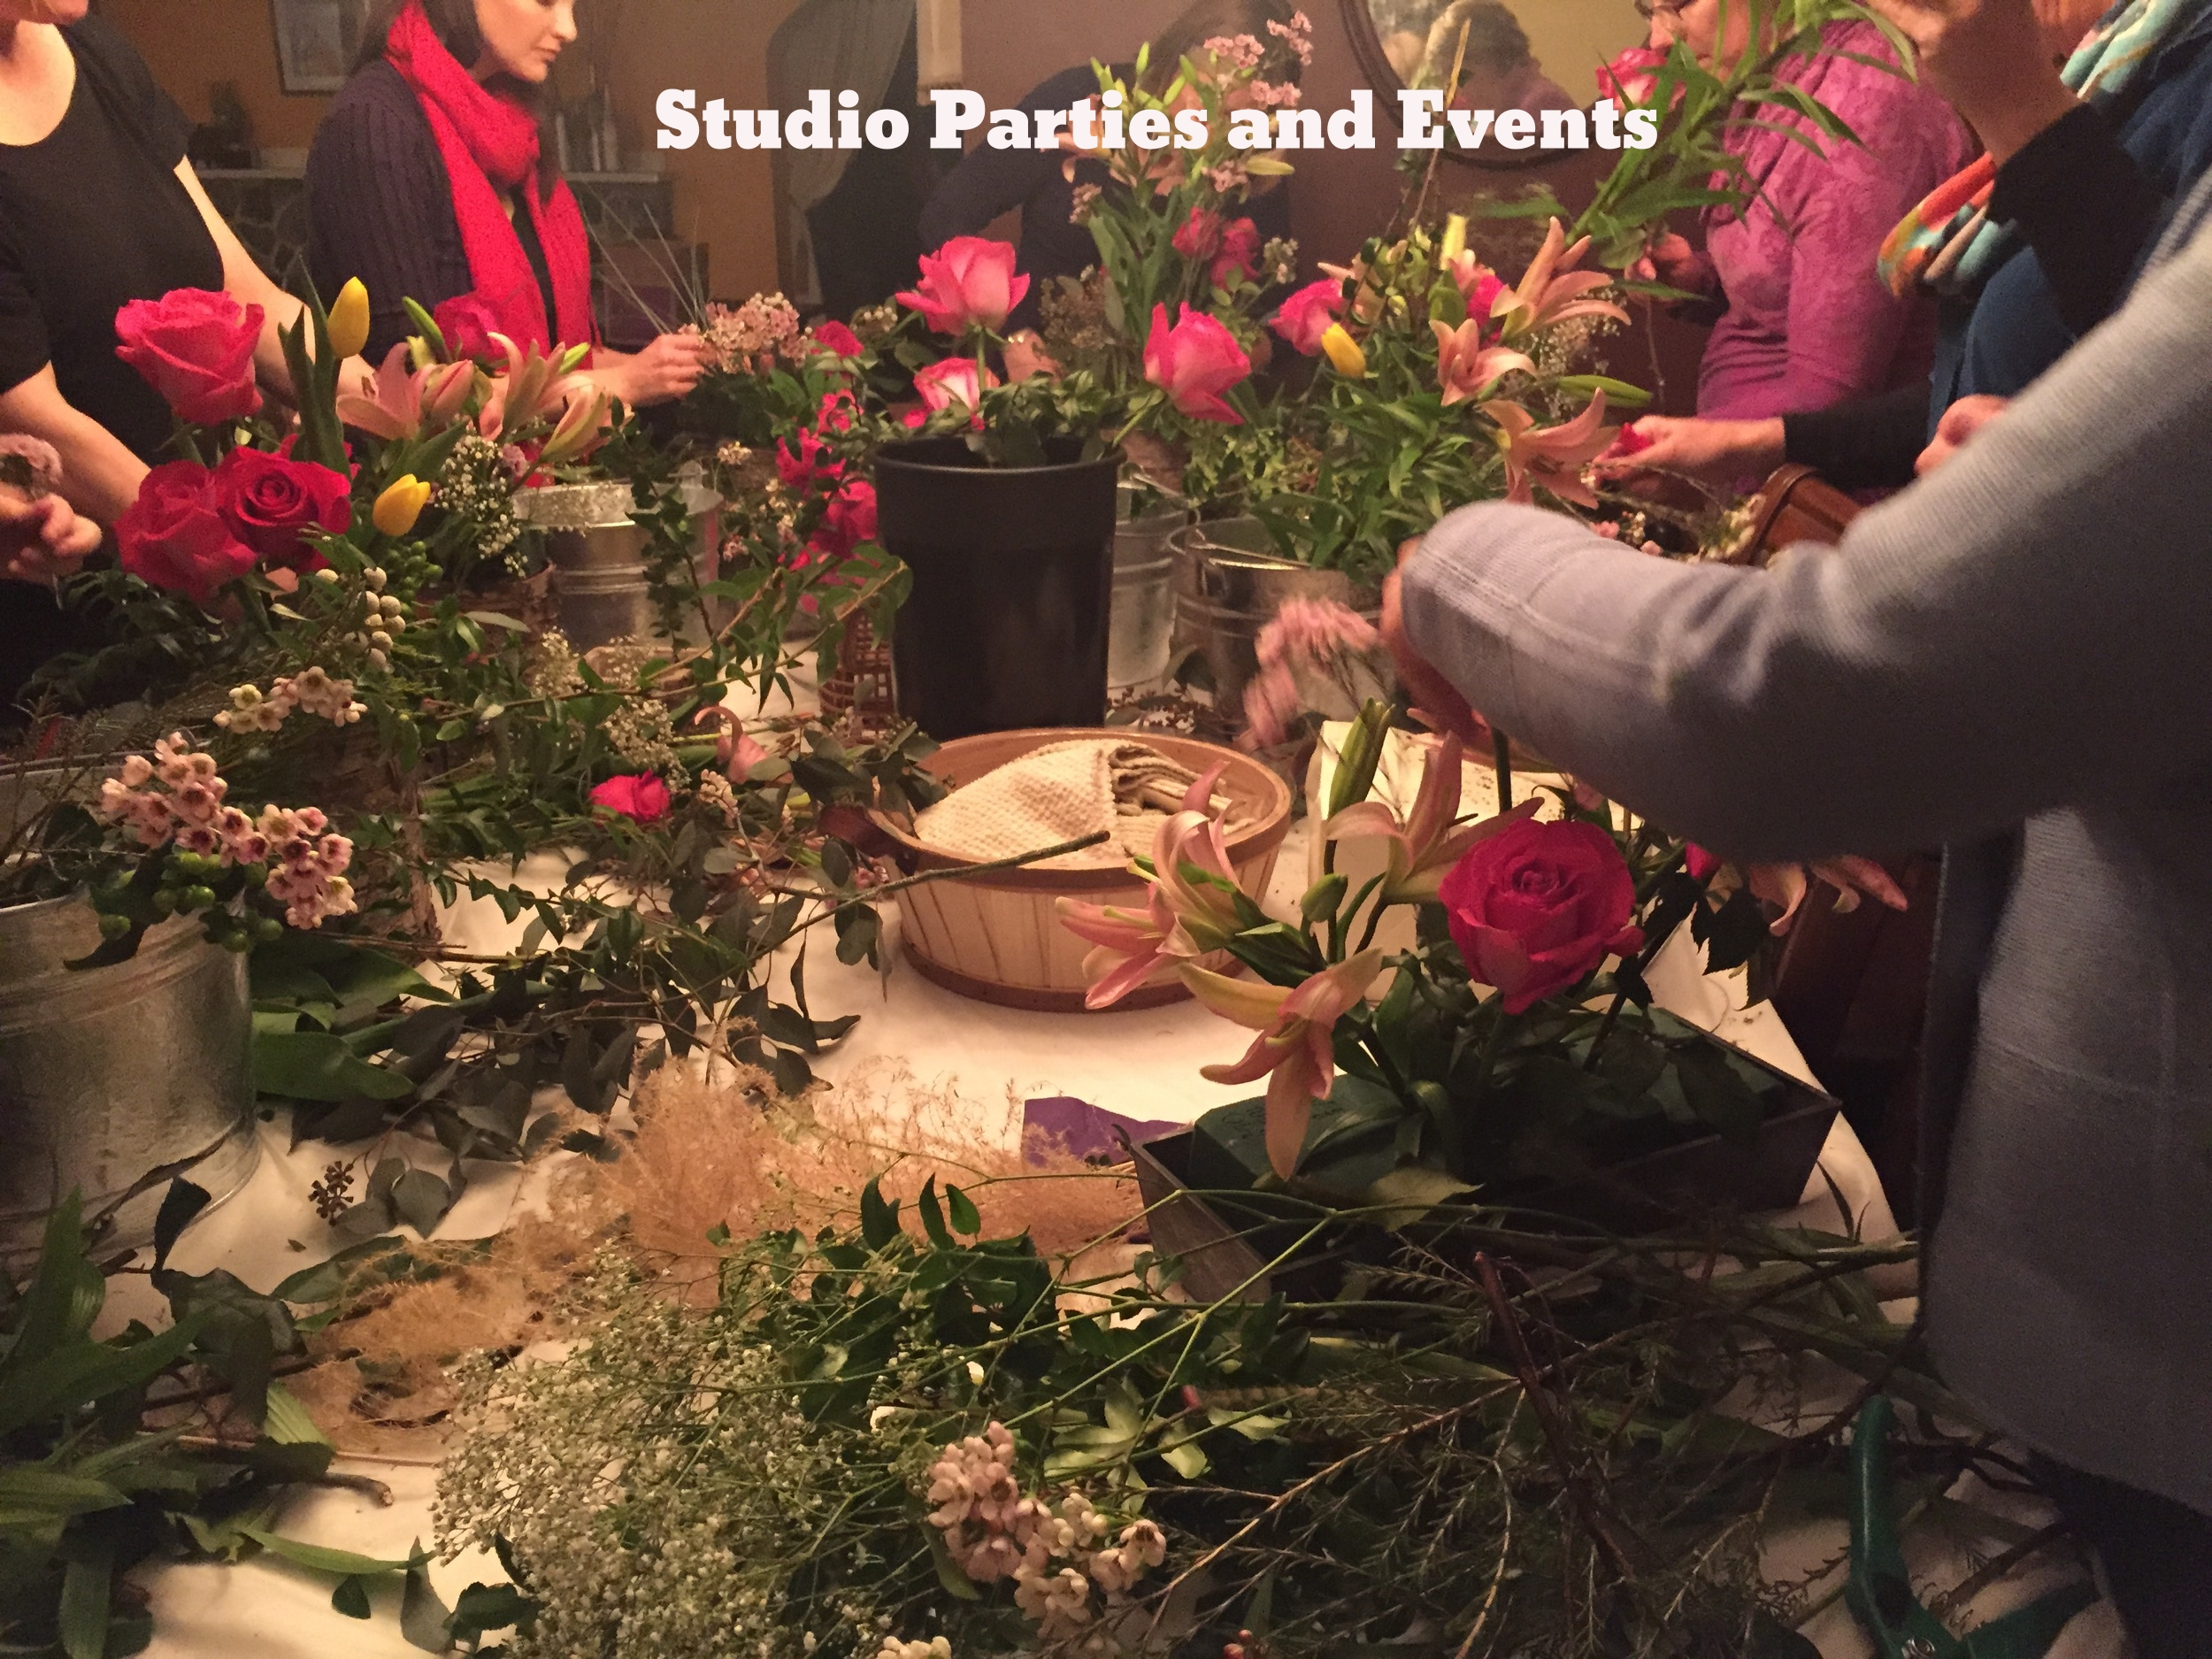 Studio Parties and Events